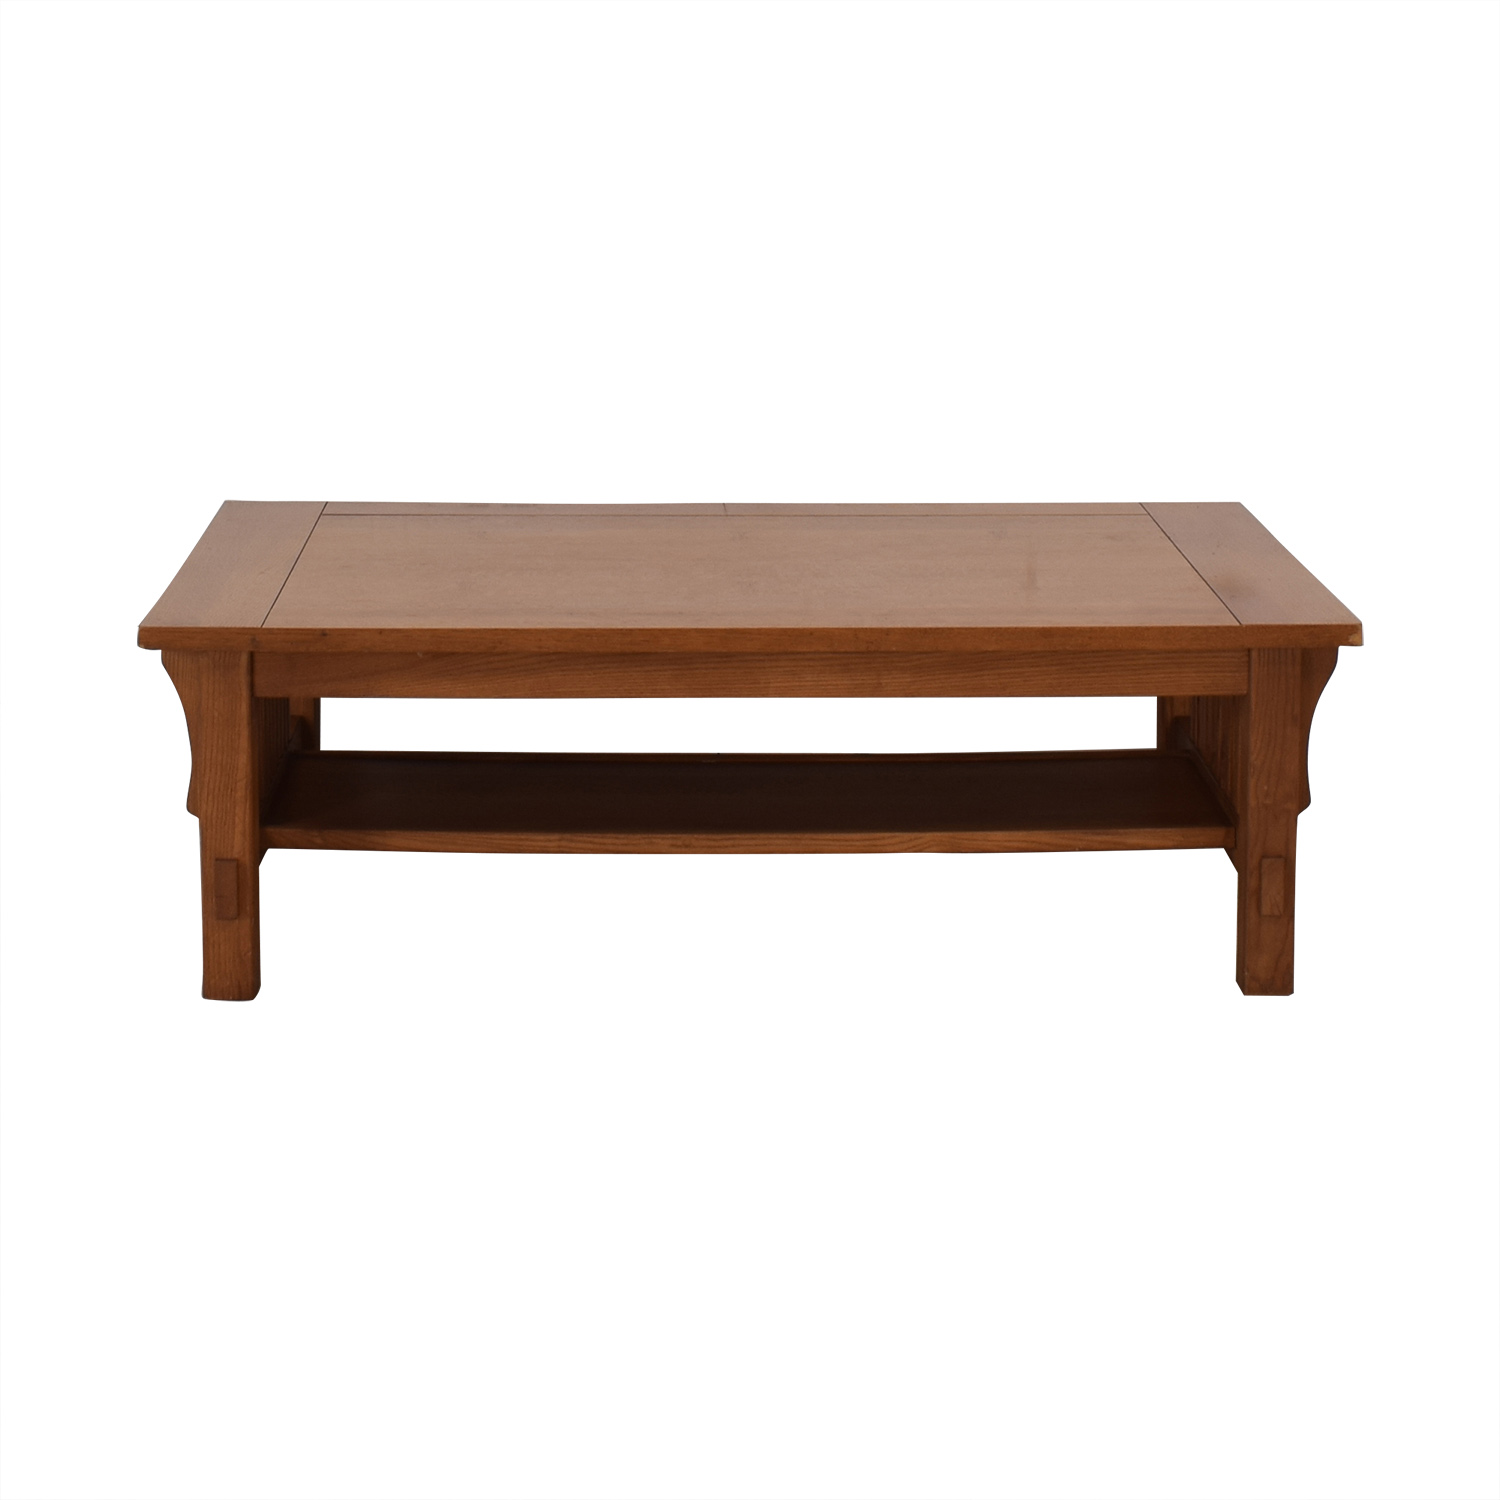 Scott Jordon Mission Style Wood Coffee Table sale